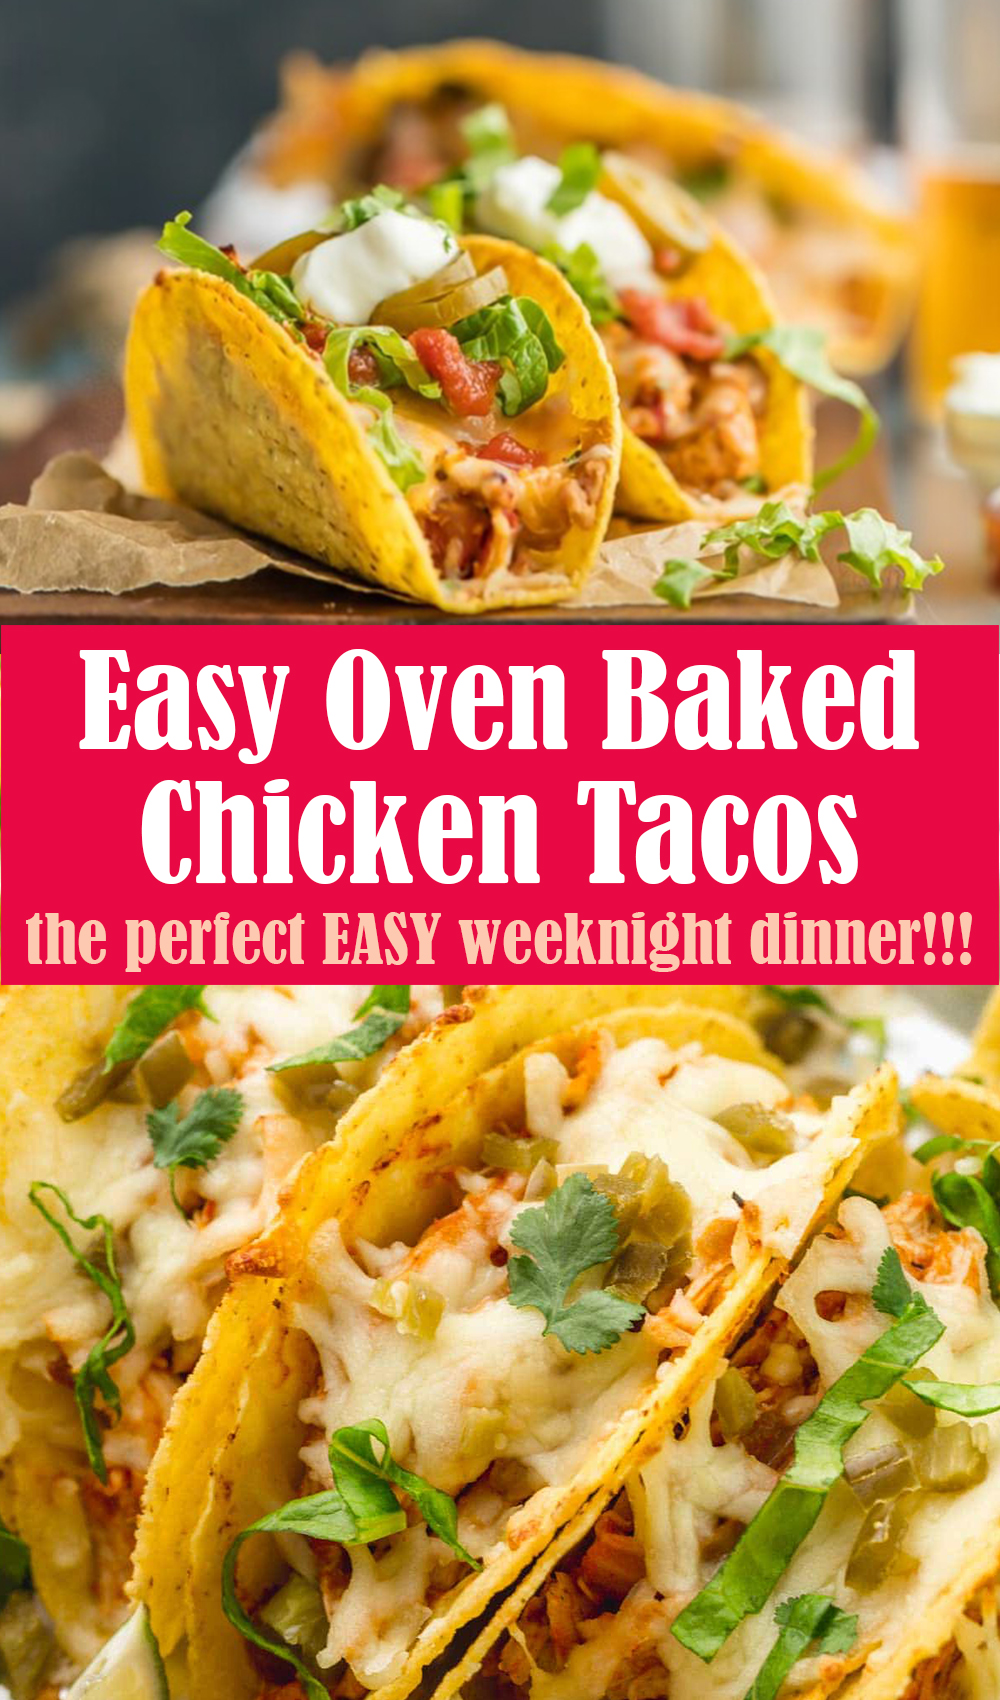 Easy Oven Baked Chicken Tacos Recipe